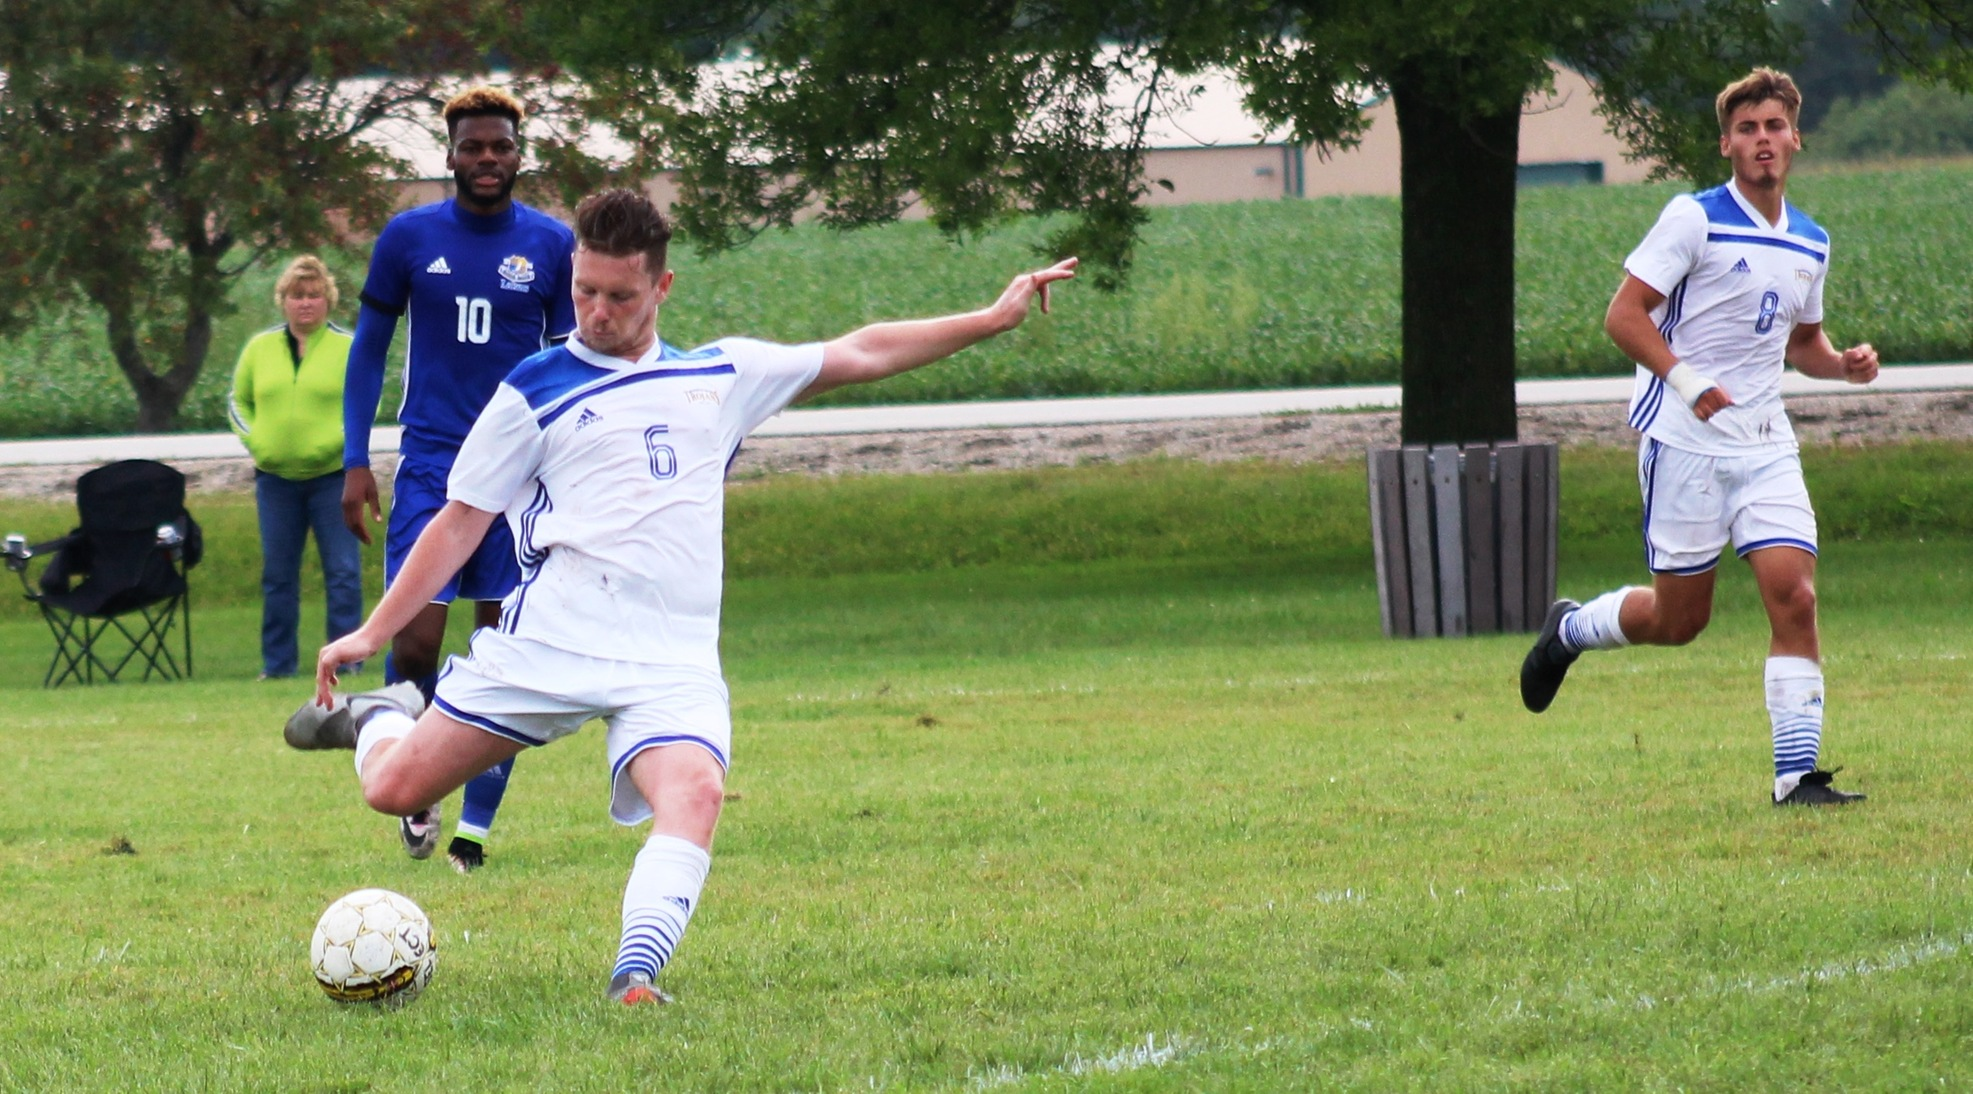 NIACC's Cian Morley kicks the ball down the field in Wednesday's match against Iowa Lakes.